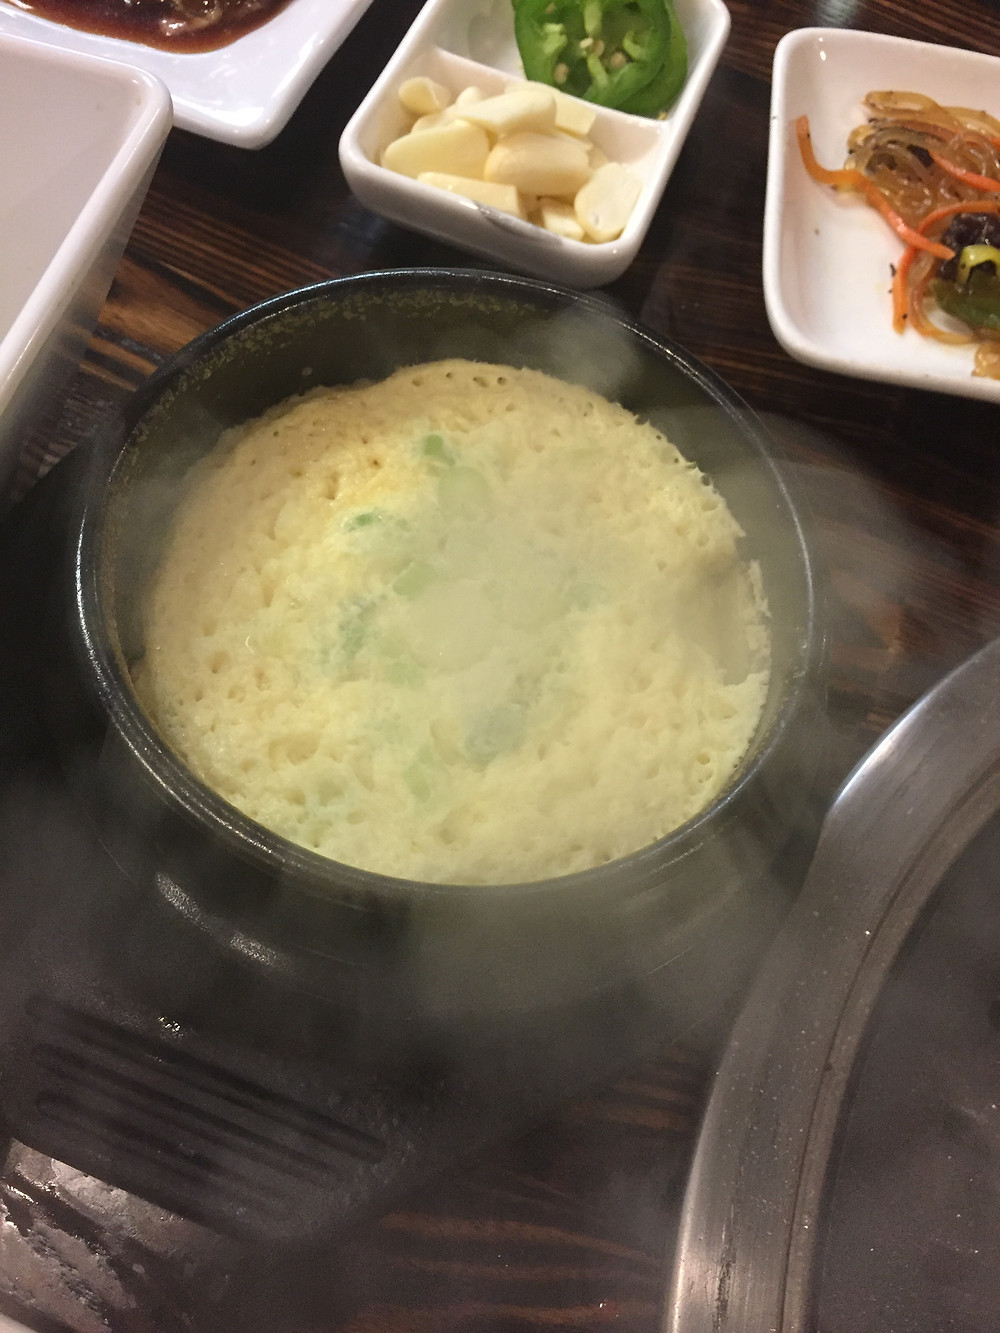 Steamed egg is the Korean cousin of scrambled egg